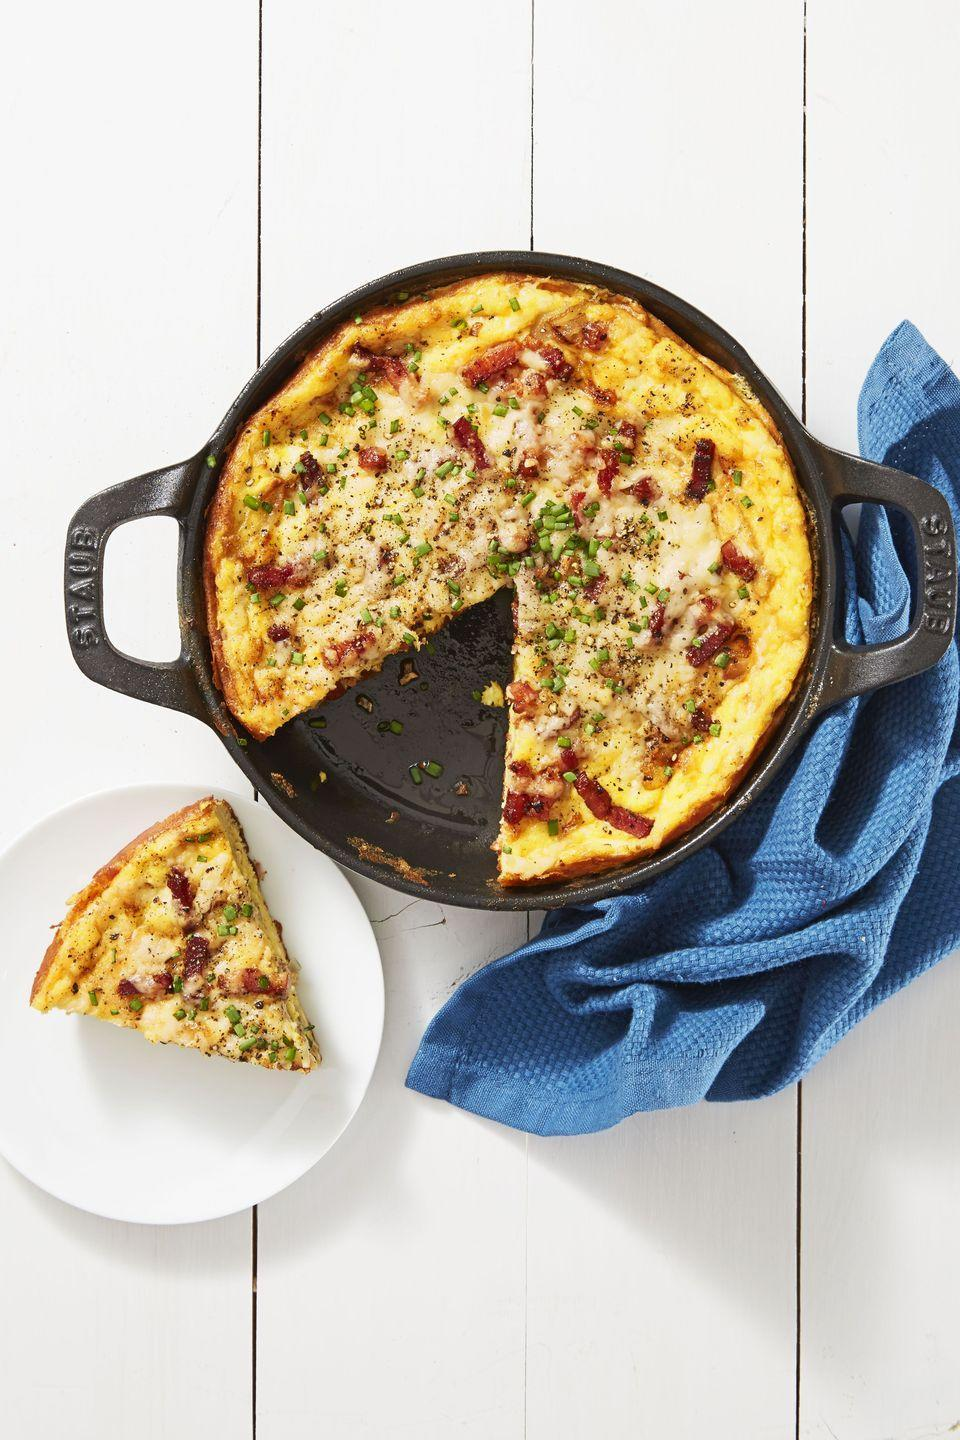 """<p>Give your gluten-free friends a <a href=""""https://www.goodhousekeeping.com/food-recipes/easy/g4258/quiche-recipes/"""" rel=""""nofollow noopener"""" target=""""_blank"""" data-ylk=""""slk:quiche"""" class=""""link rapid-noclick-resp"""">quiche</a> they can <em>actually </em>eat. Trust us: With bacon, Gruyere, chives, and shallots, nobody will even miss the crust.</p><p><a href=""""https://www.goodhousekeeping.com/food-recipes/a39947/crustless-quiche-lorraine-recipe/"""" rel=""""nofollow noopener"""" target=""""_blank"""" data-ylk=""""slk:Get the recipe for Crustless Quiche Lorraine »"""" class=""""link rapid-noclick-resp""""><em>Get the recipe for Crustless Quiche Lorraine »</em></a></p>"""